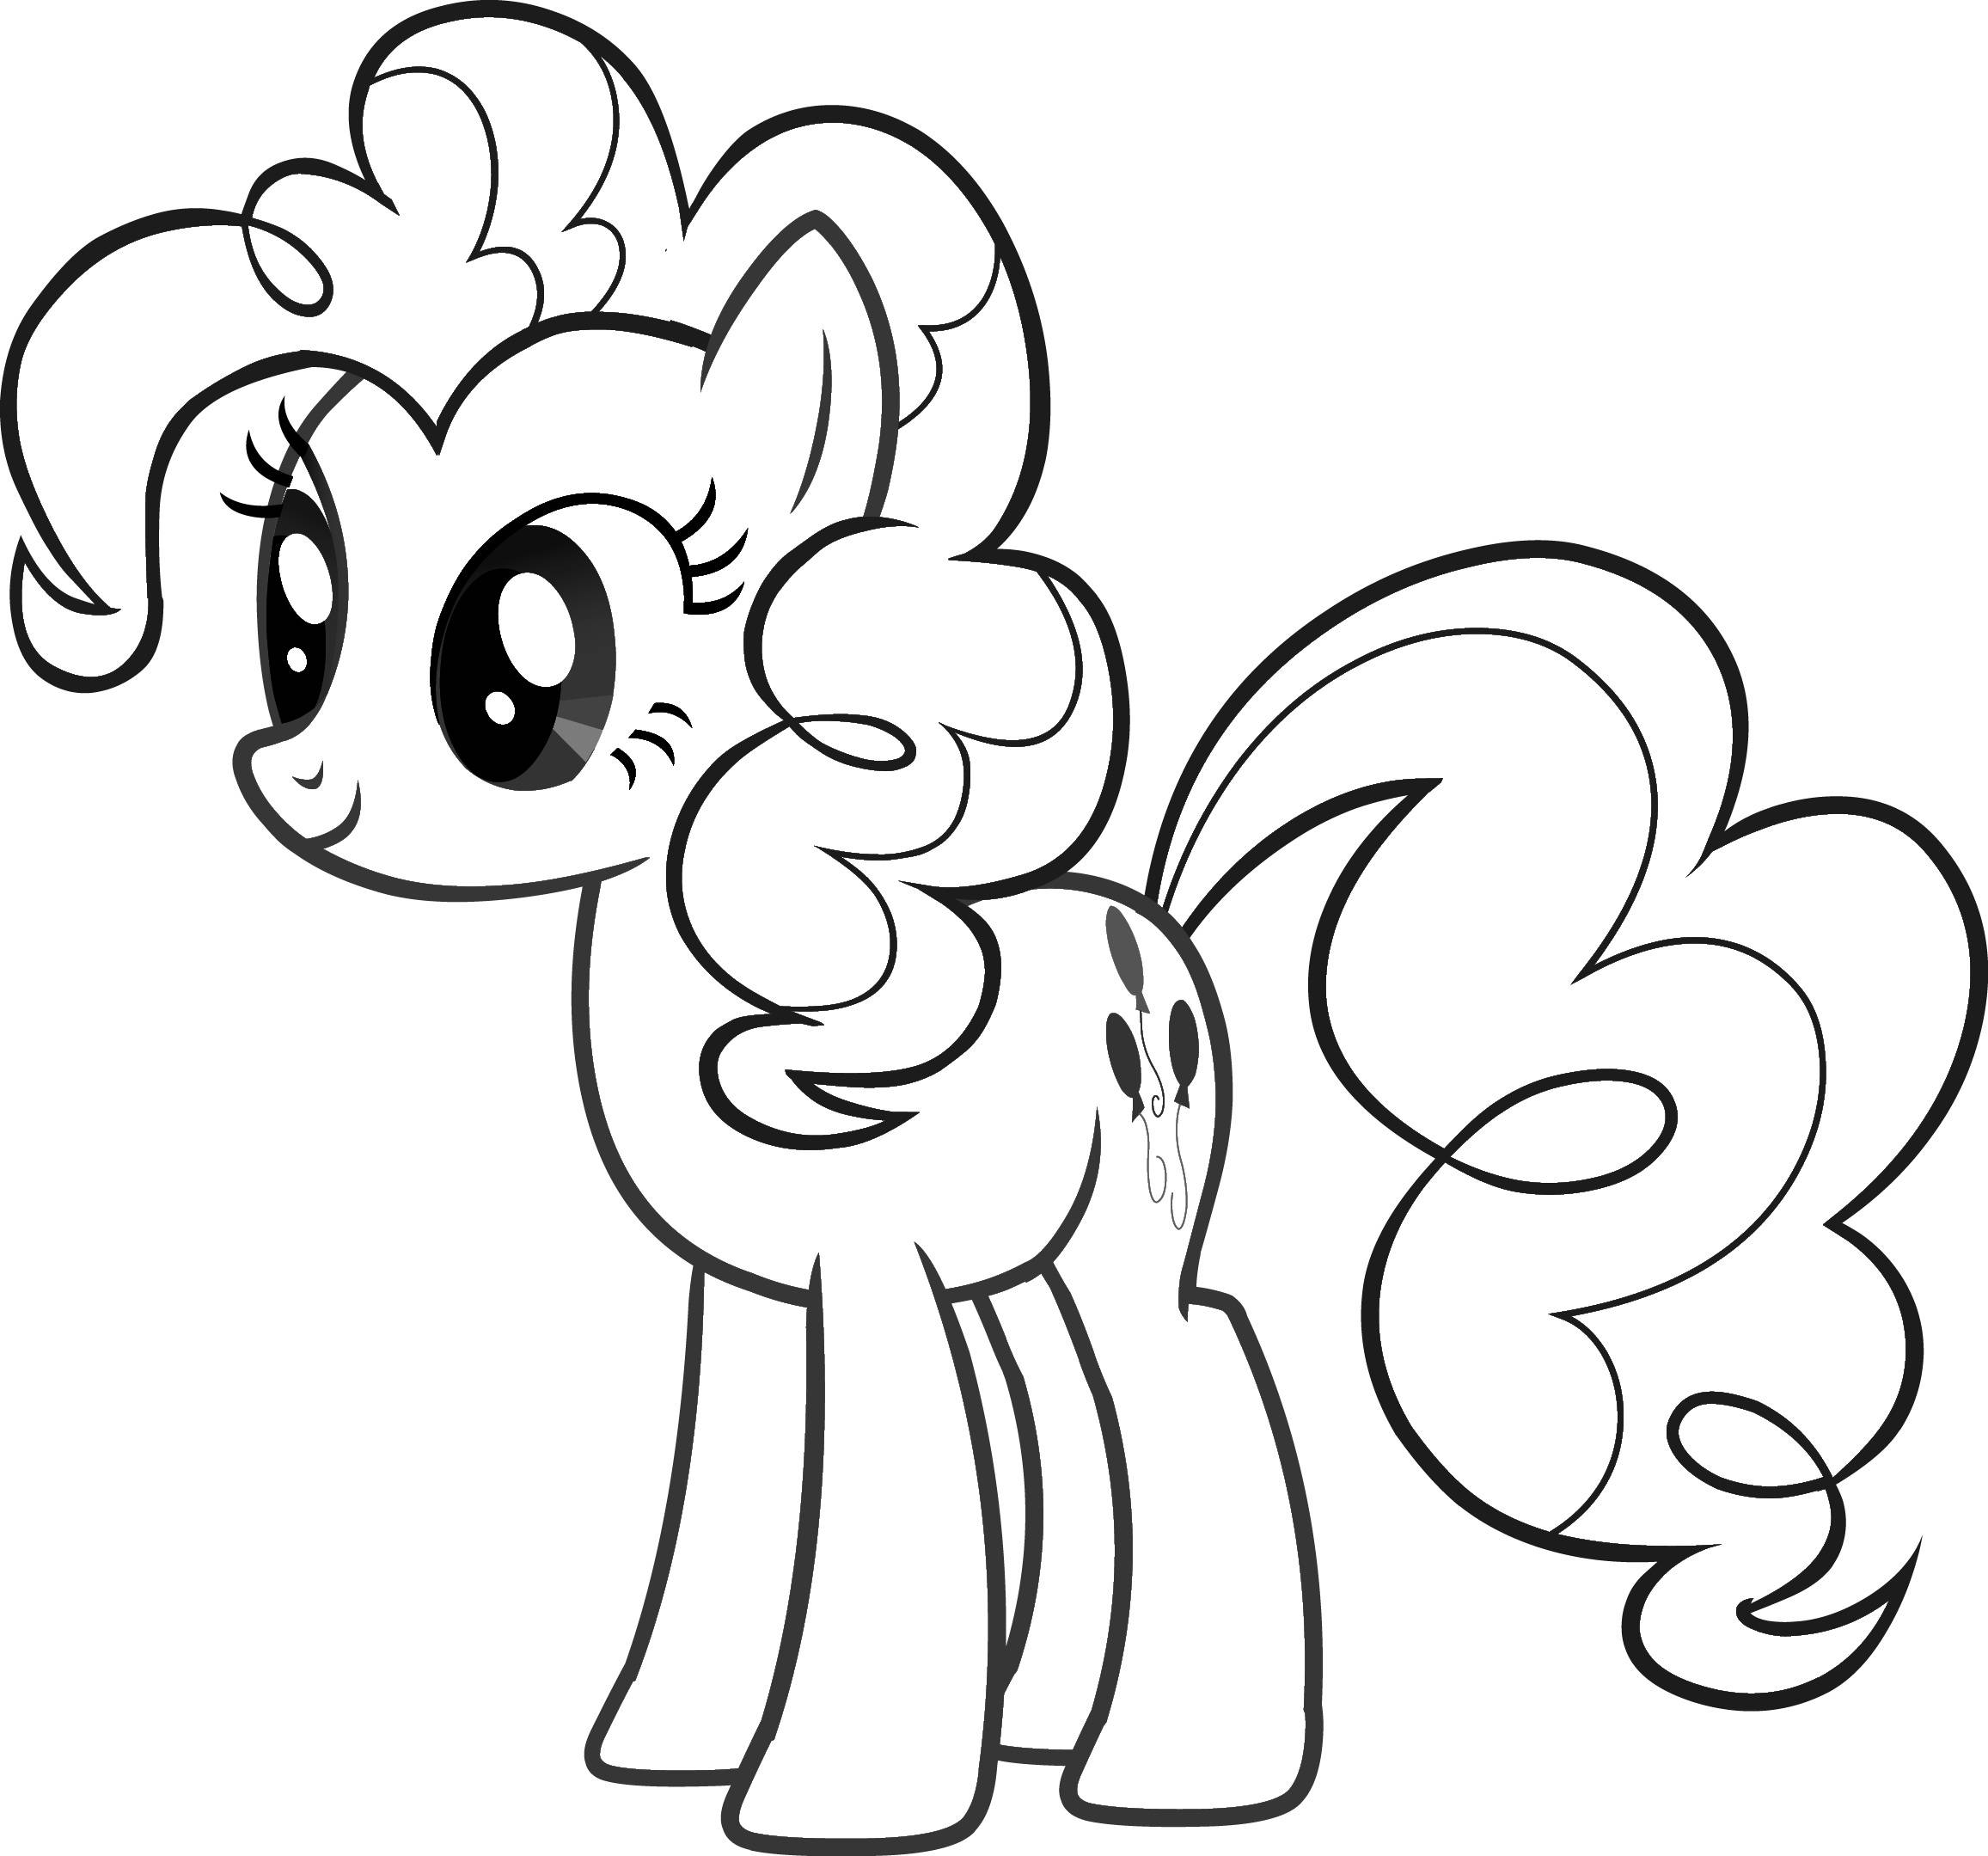 Free Coloring Pages My Little Pony Kids Activities Free Coloring Pages